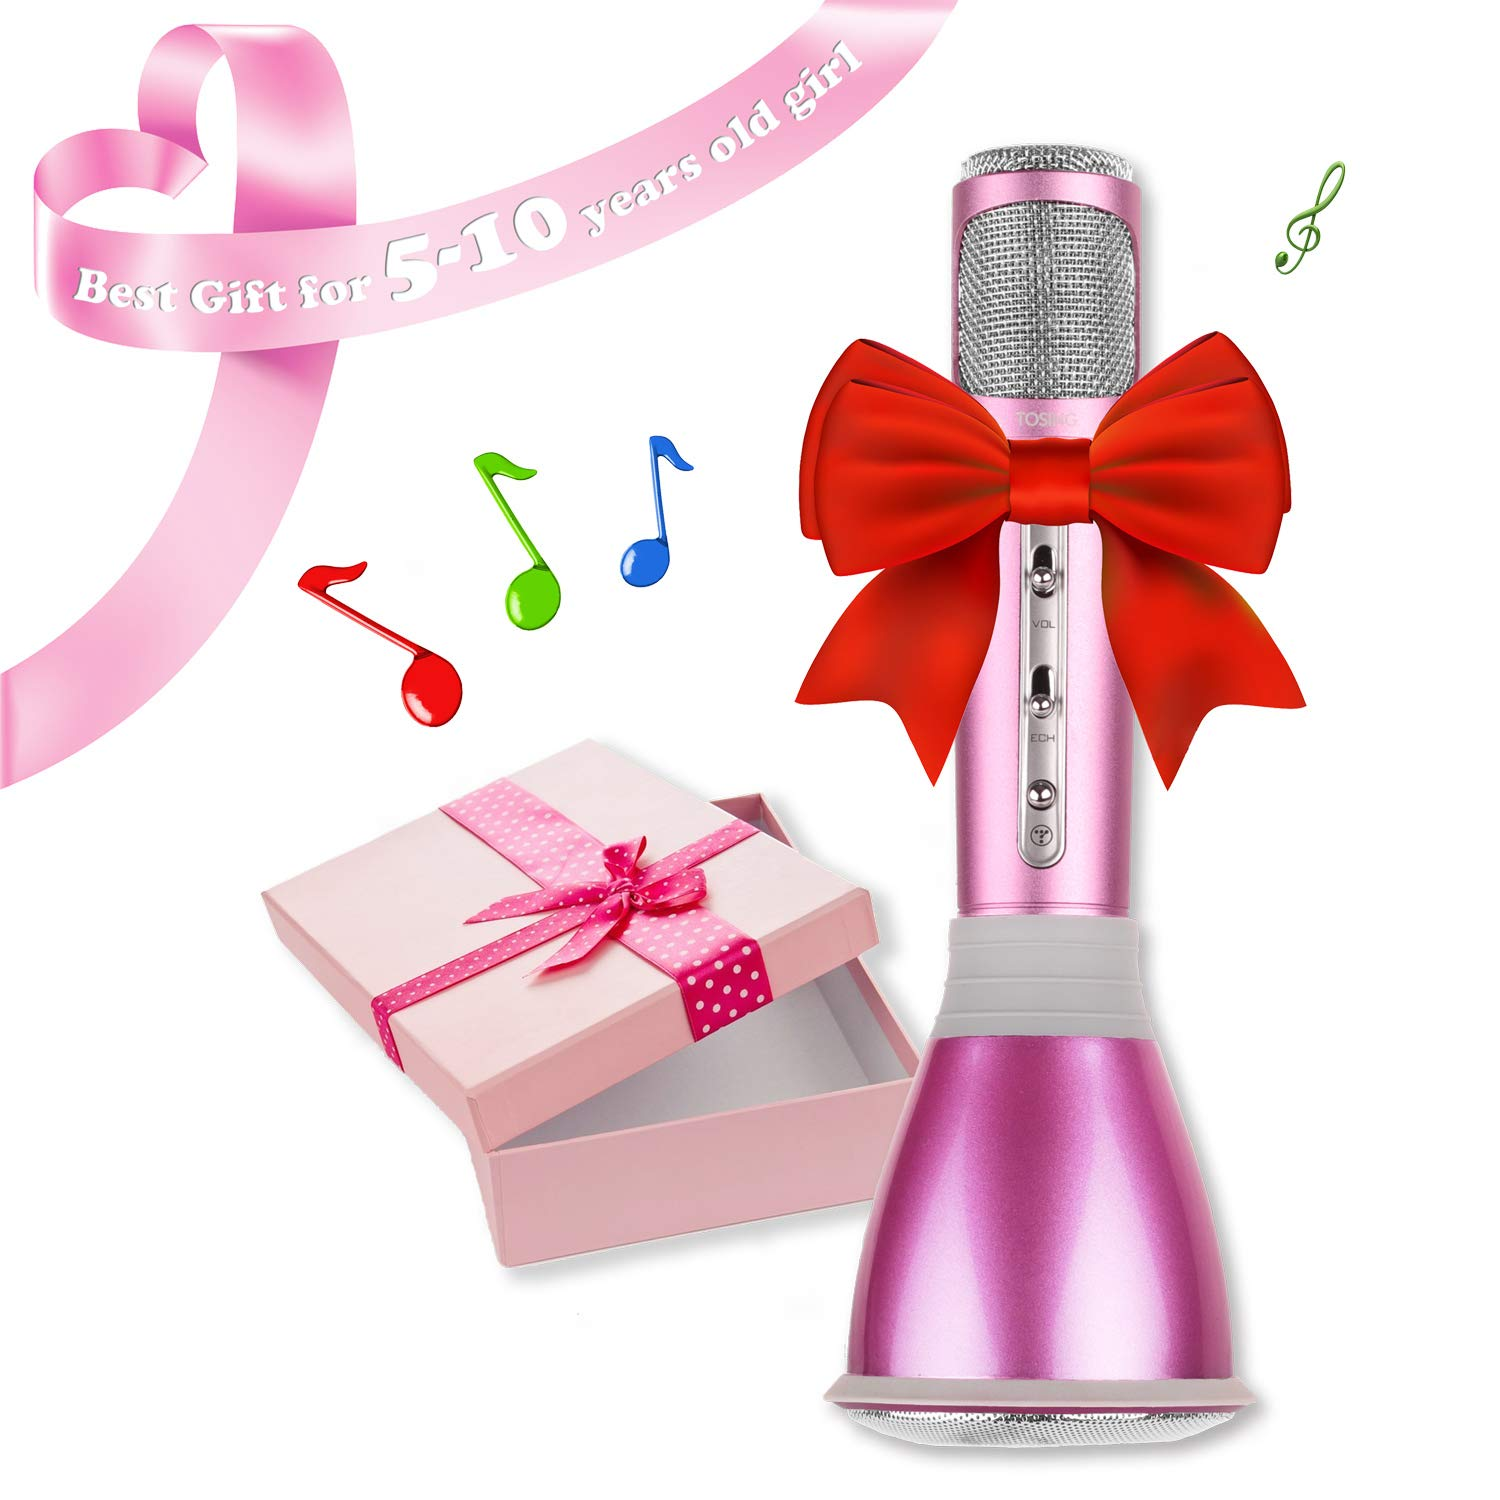 NeWisdom Top Birthday Gifts For Girls Age 5 To 13 Year Old Wireless Bluetooth Microphone Karaoke Machine 6 7 8 9 10 11 12